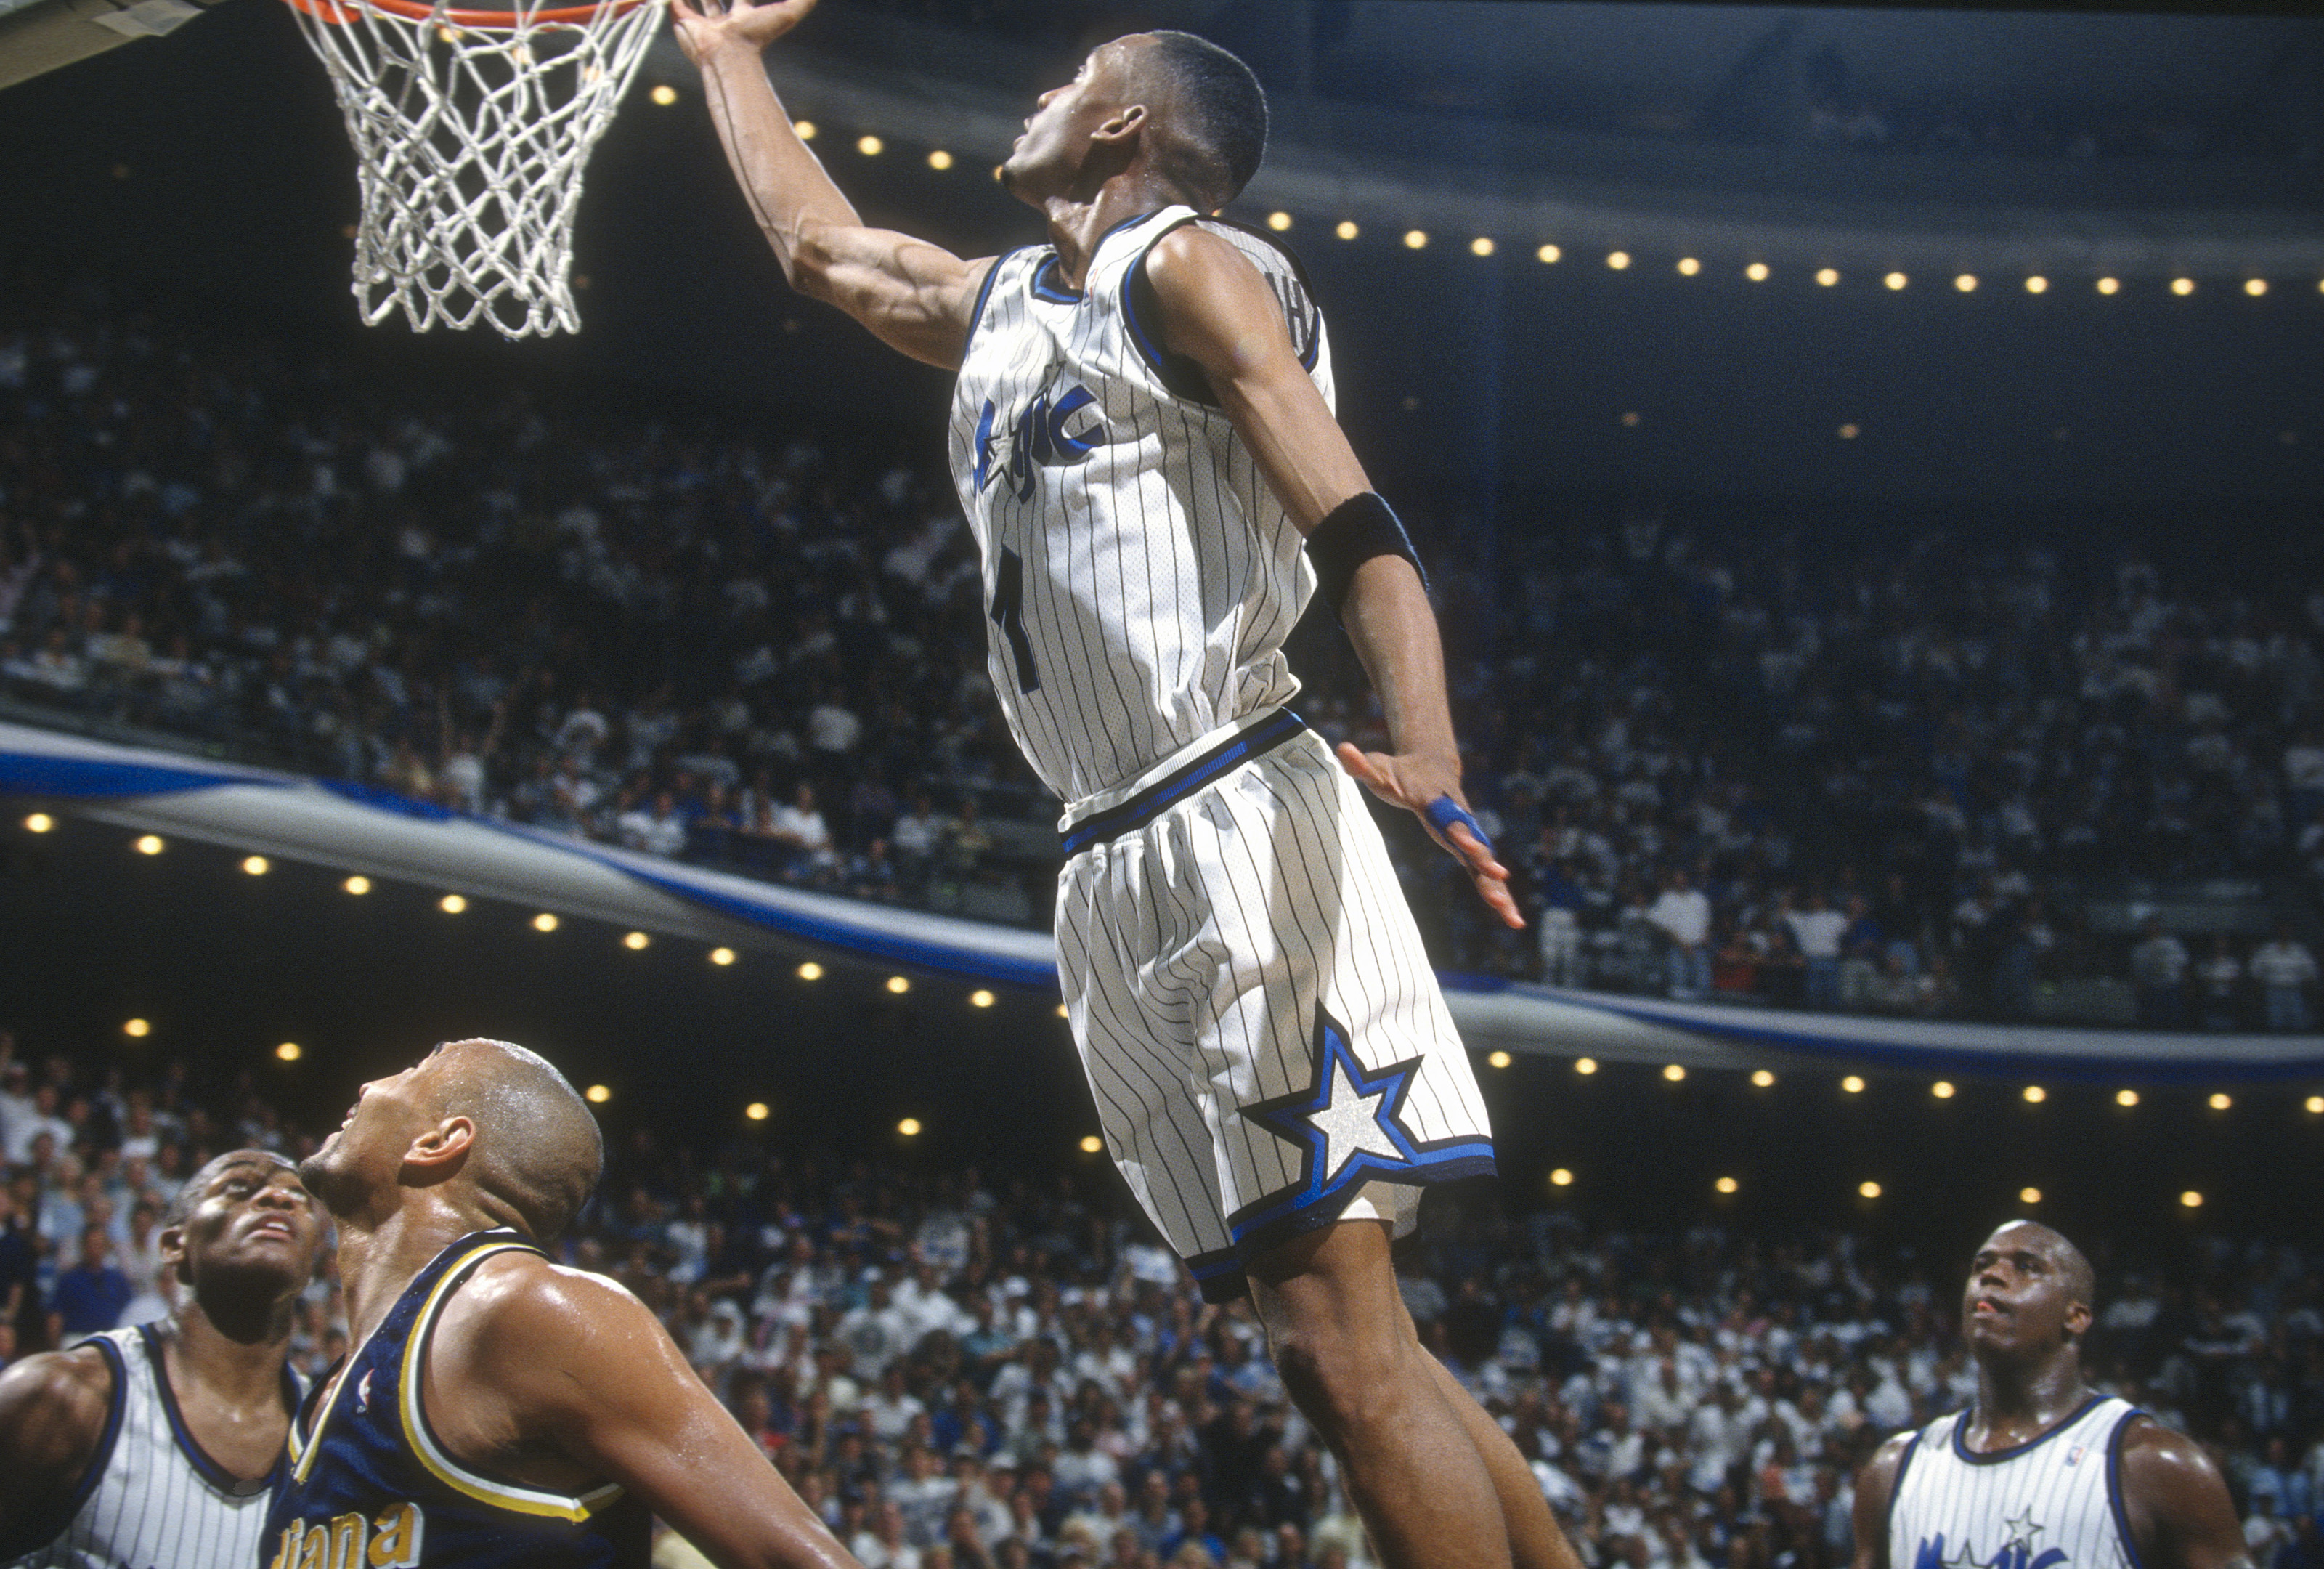 How To Learn More About The 1995 Orlando Magic Featured In The Last Dance